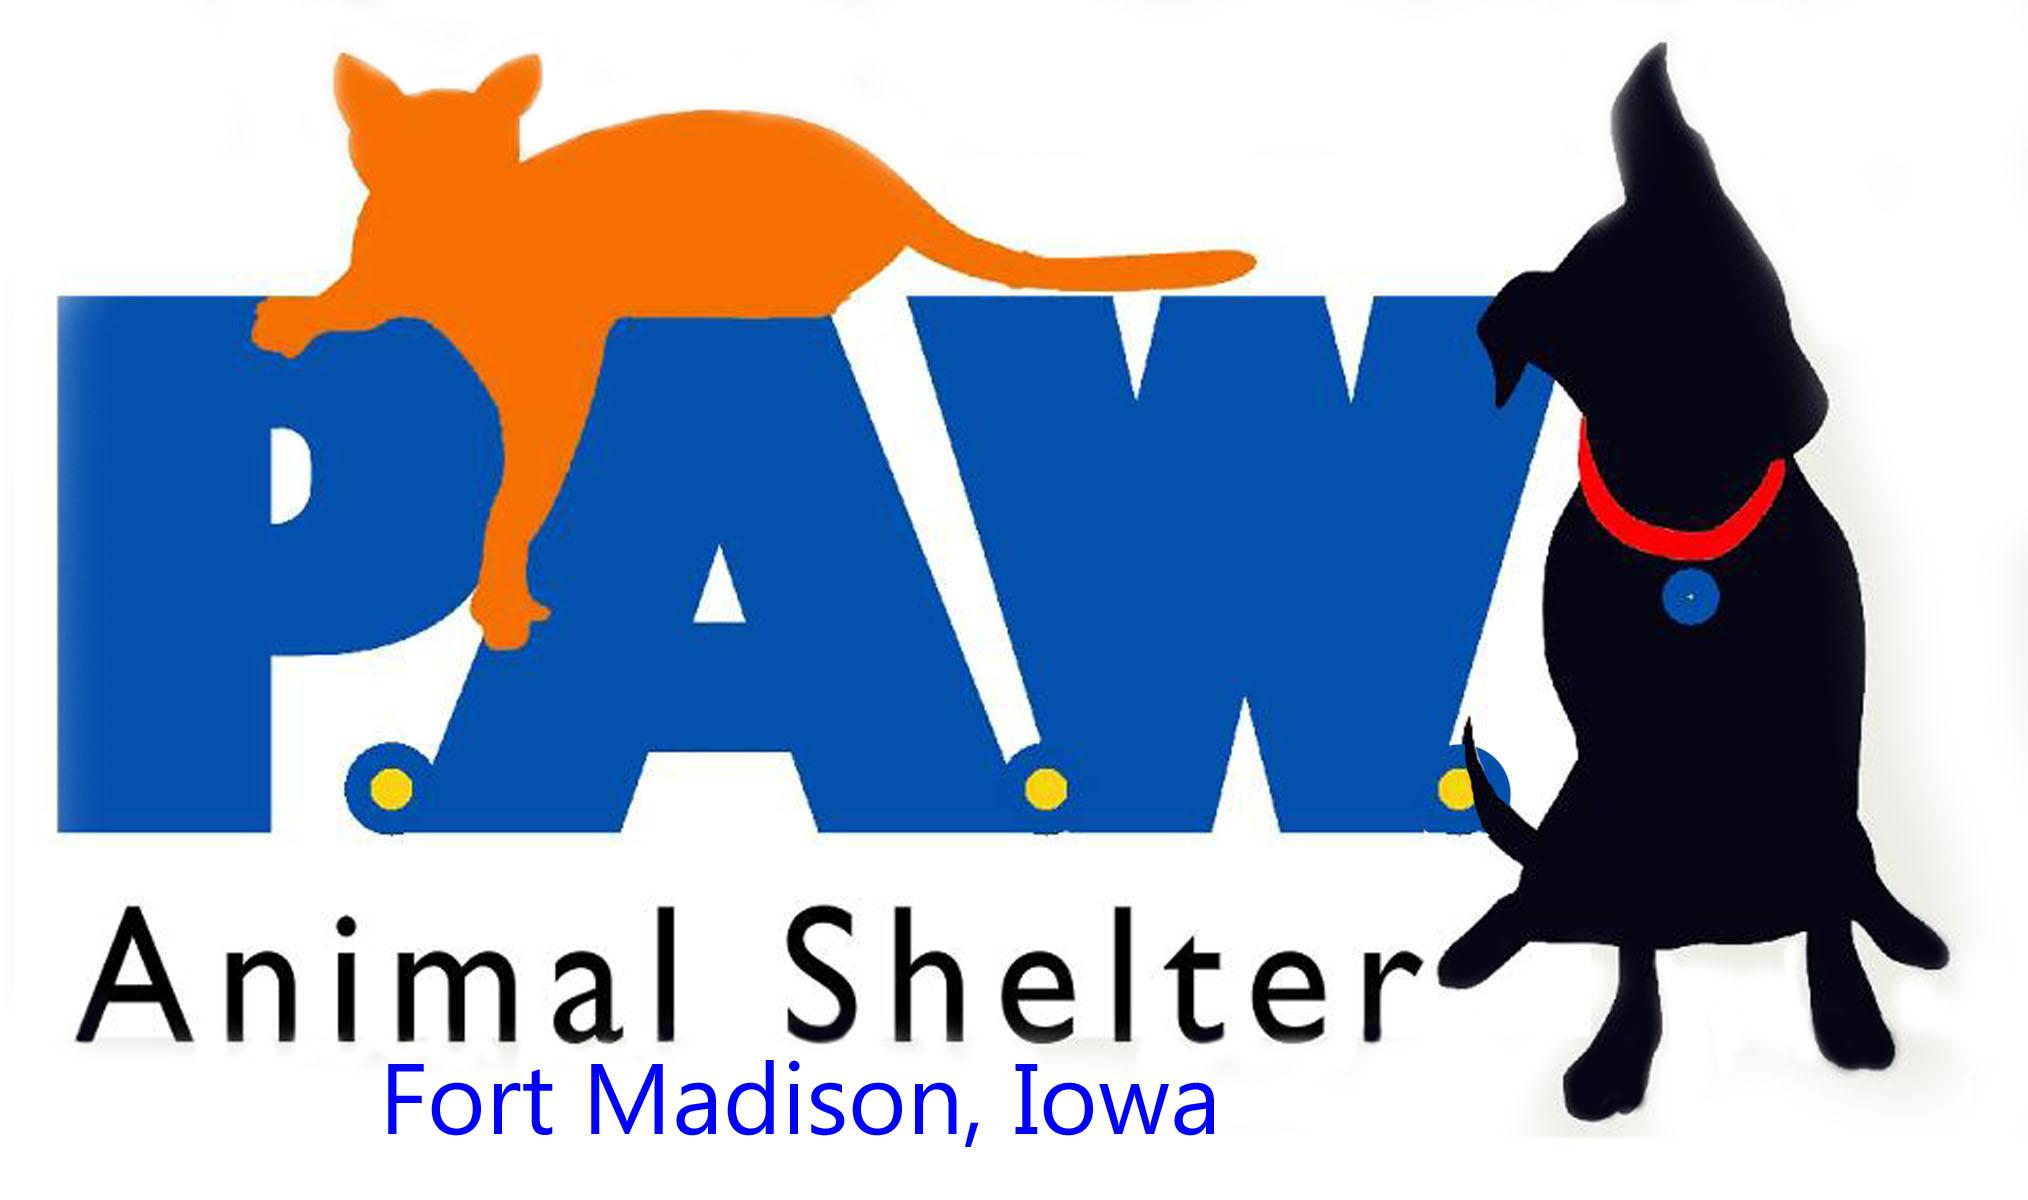 Pets for Adoption at Protectors of Animal Welfare (P A W